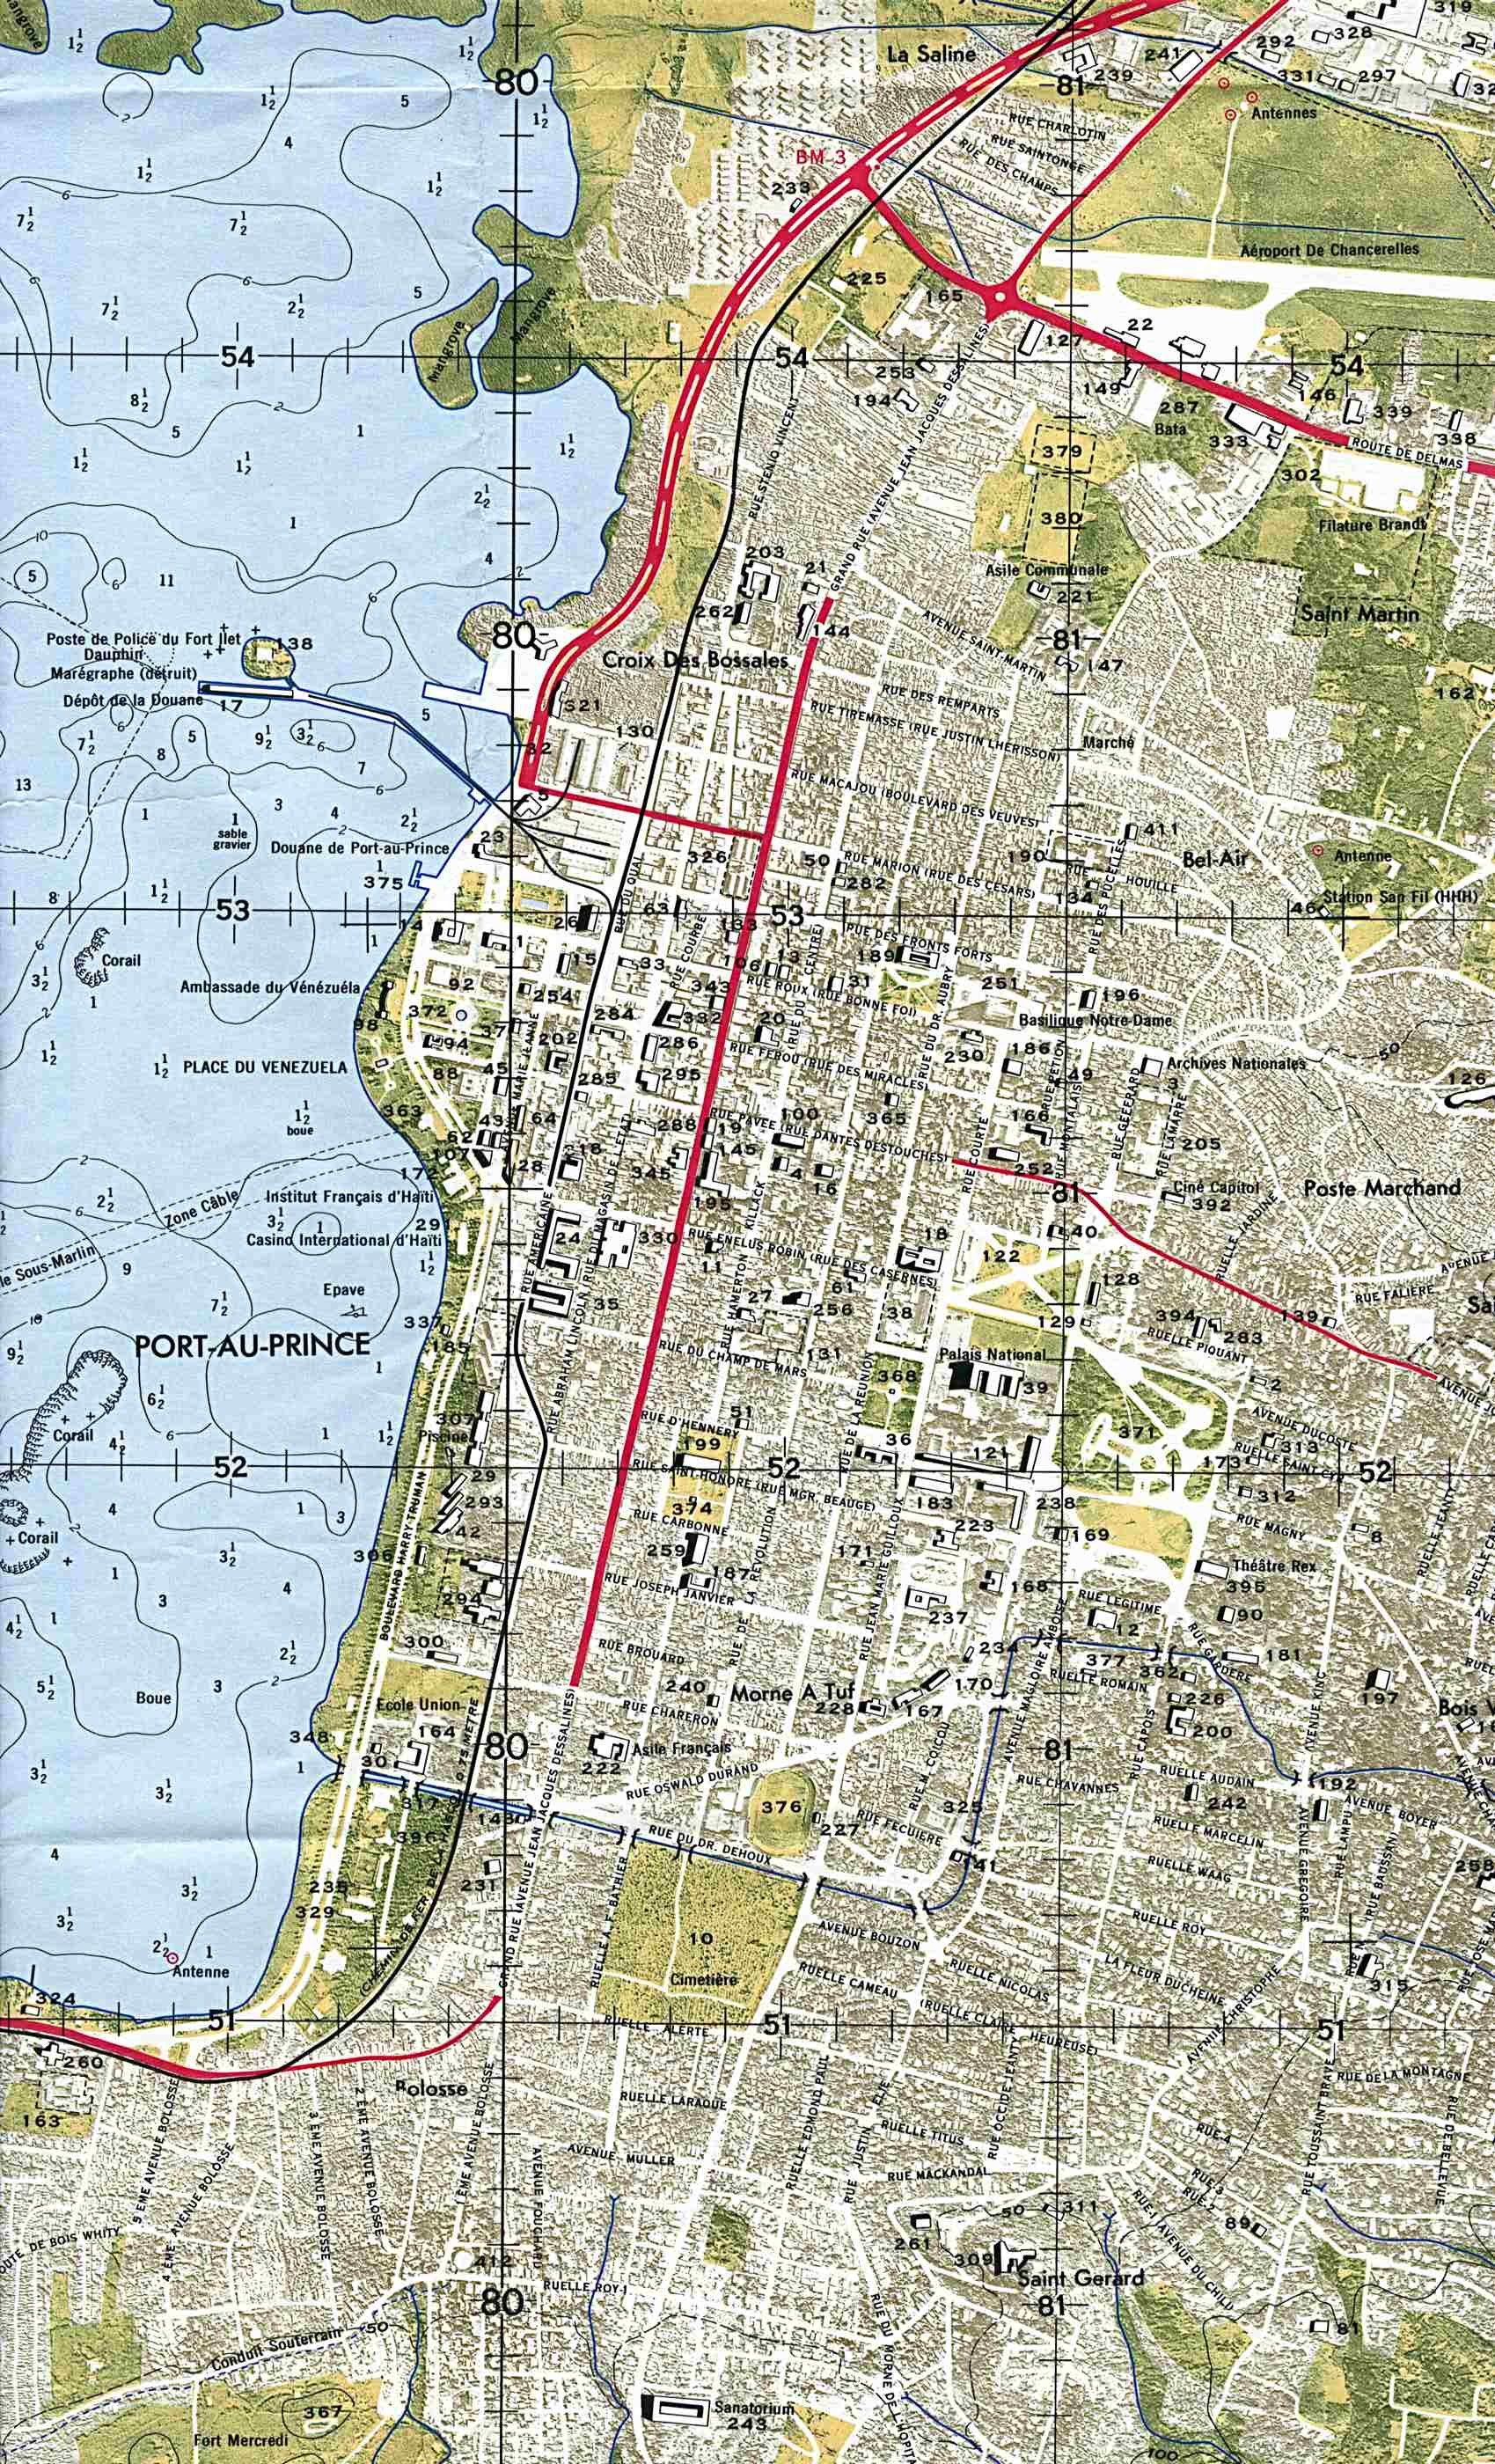 1up Travel Maps Of Haitiport Au Prince Central Orthophoto 1 - Map-of-haiti-and-us